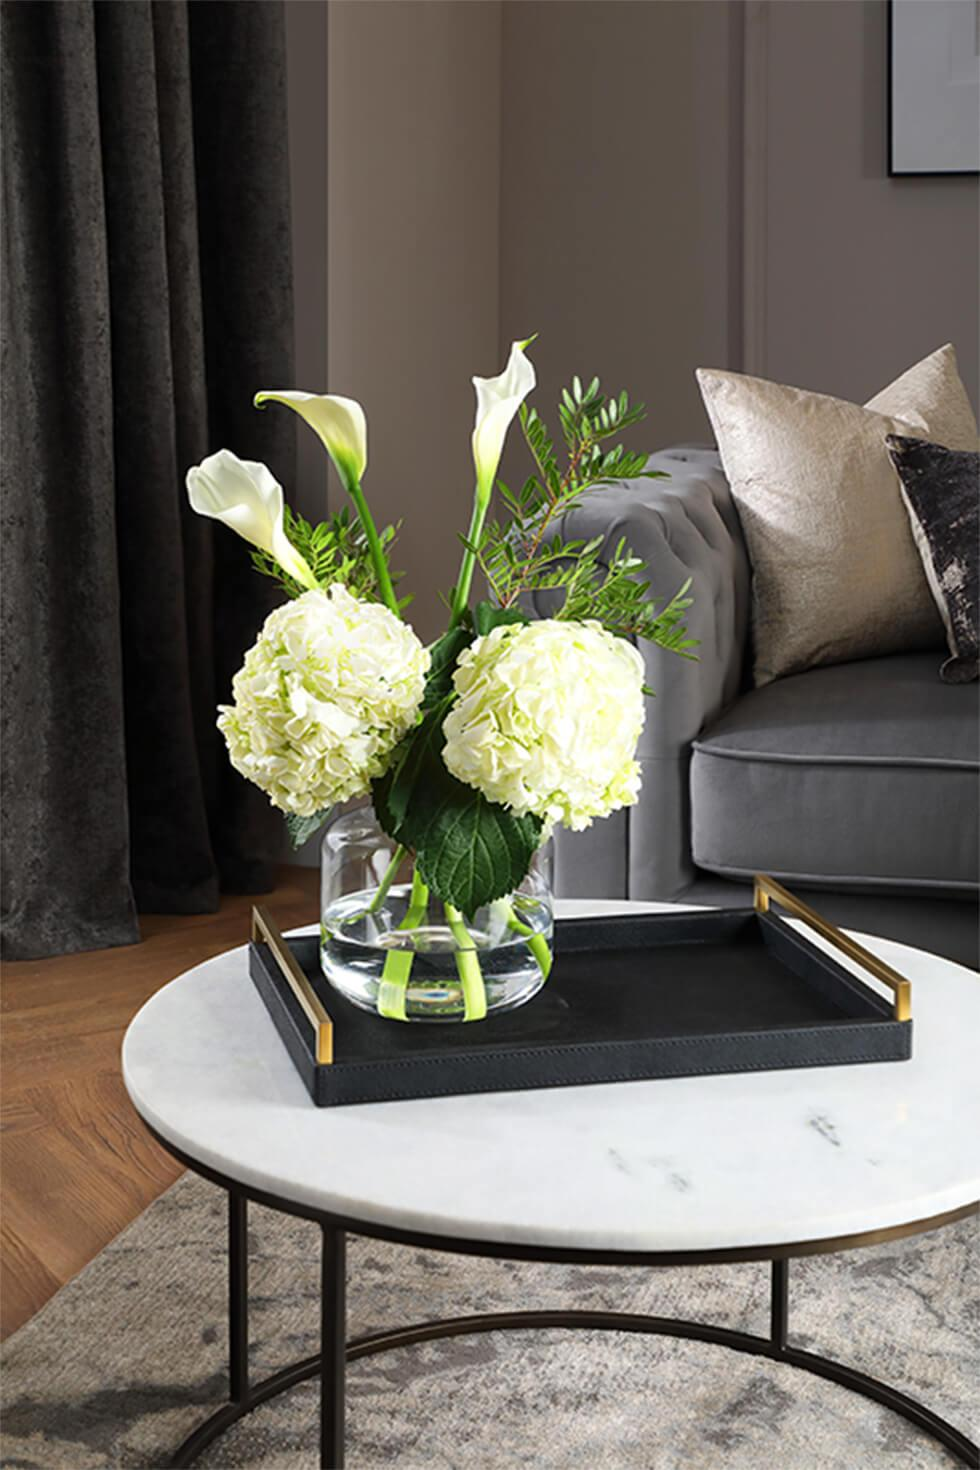 Marble coffee table with dark tray, and a vase of flowers